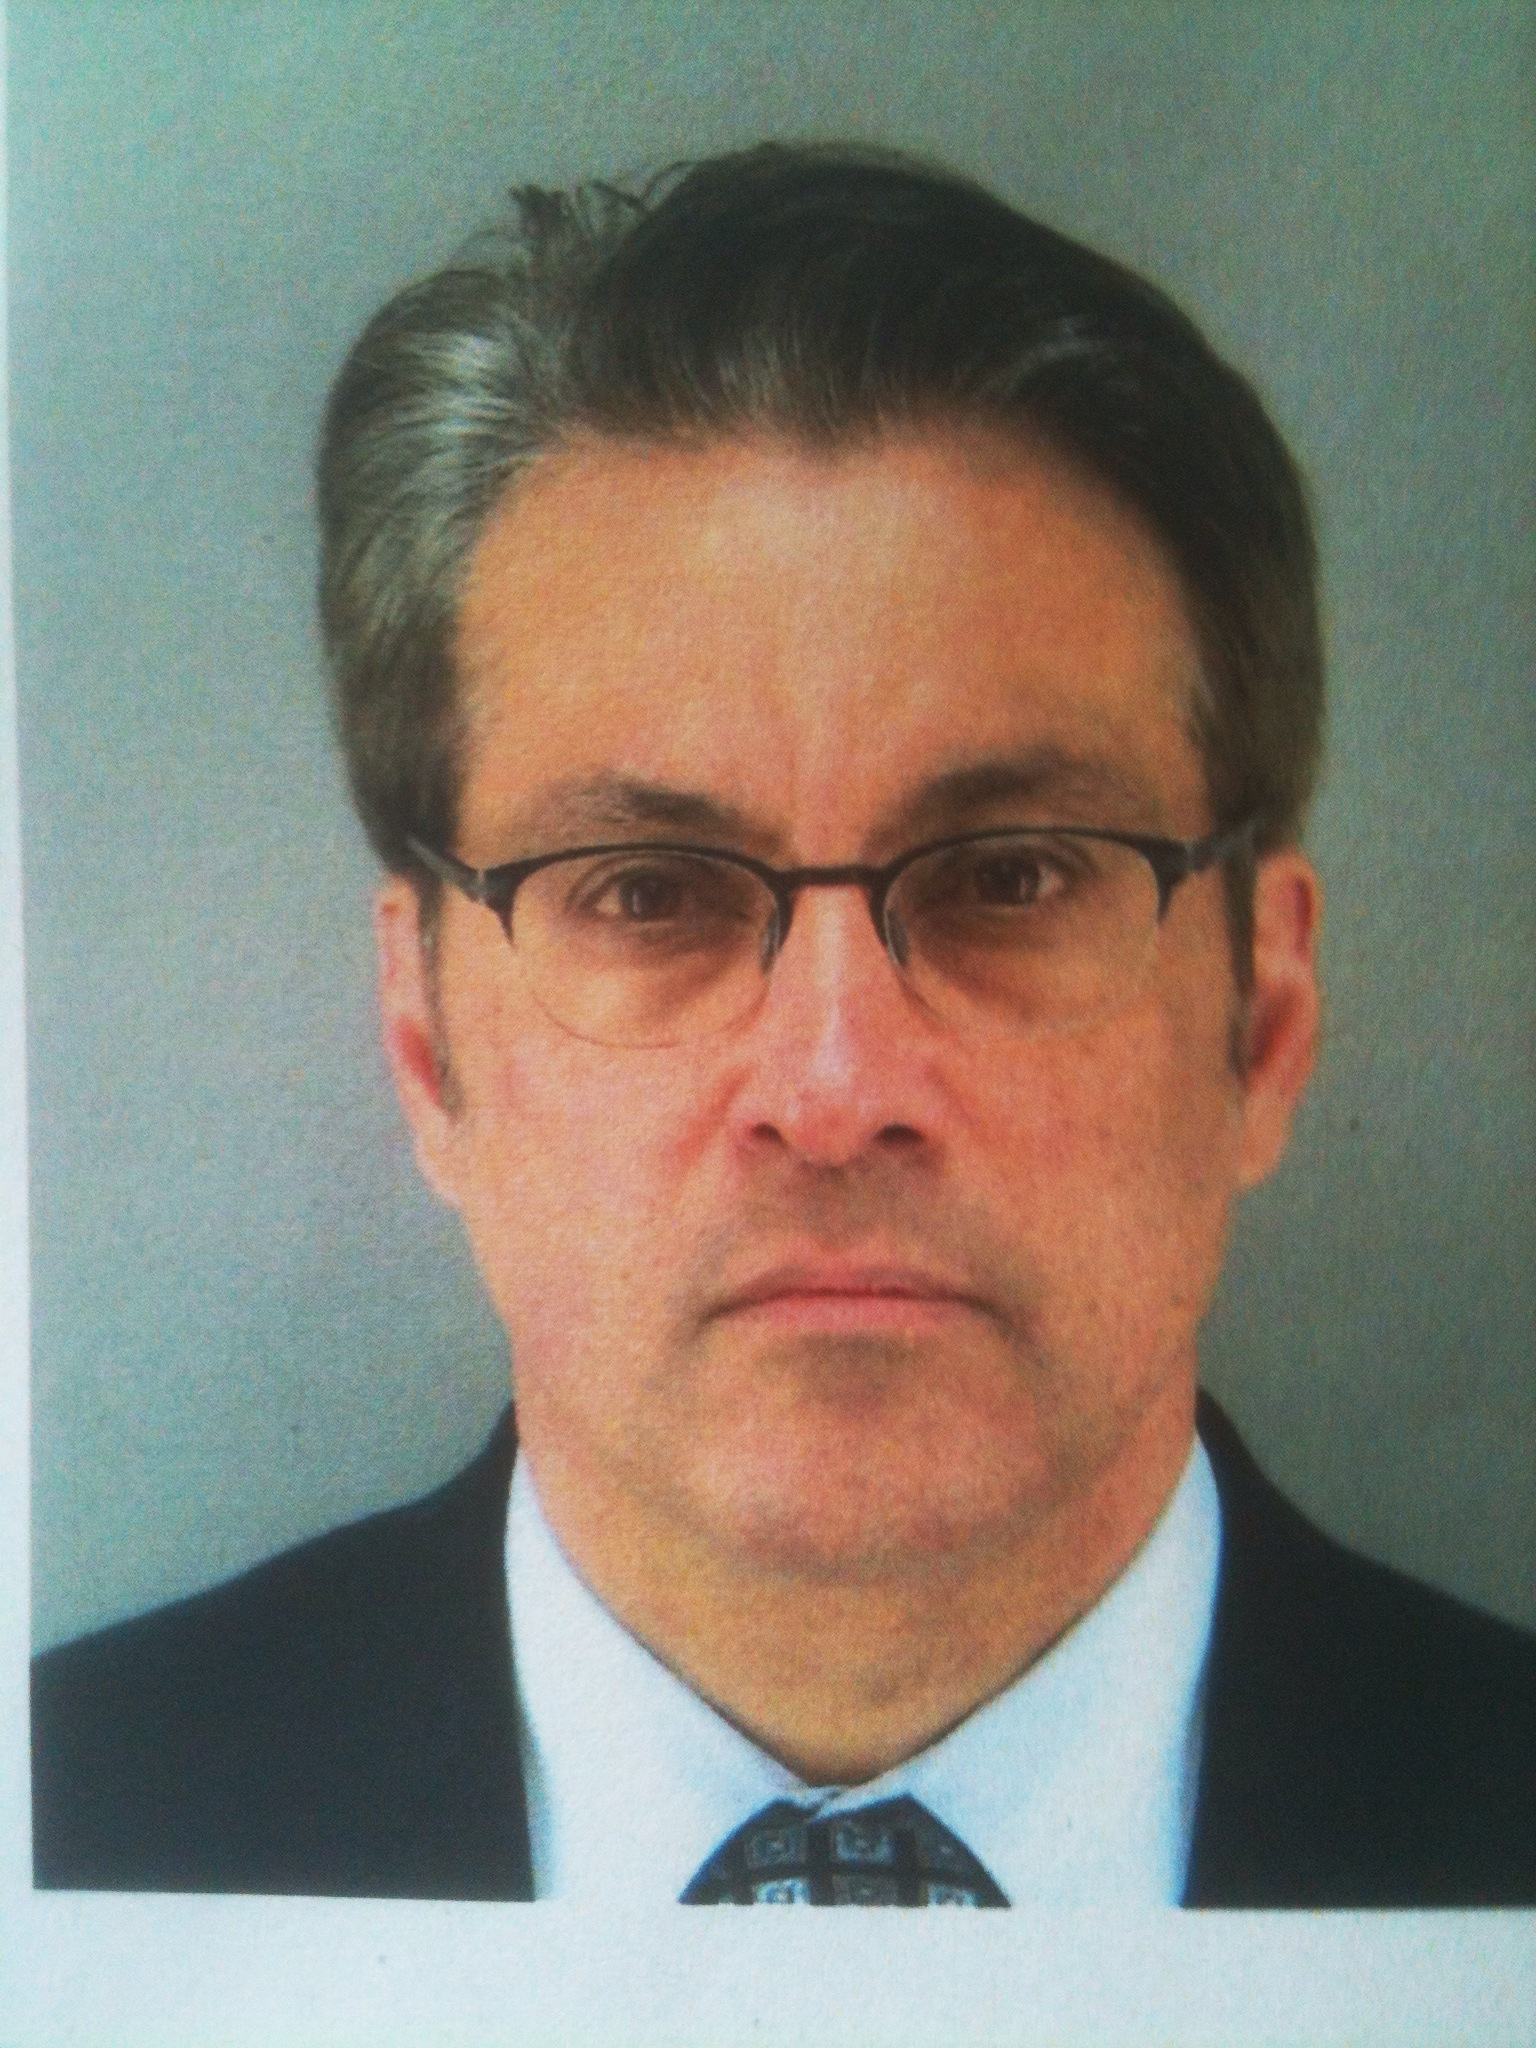 San Francisco Supervisor Ross Mirkarimi poses for his mugshot.